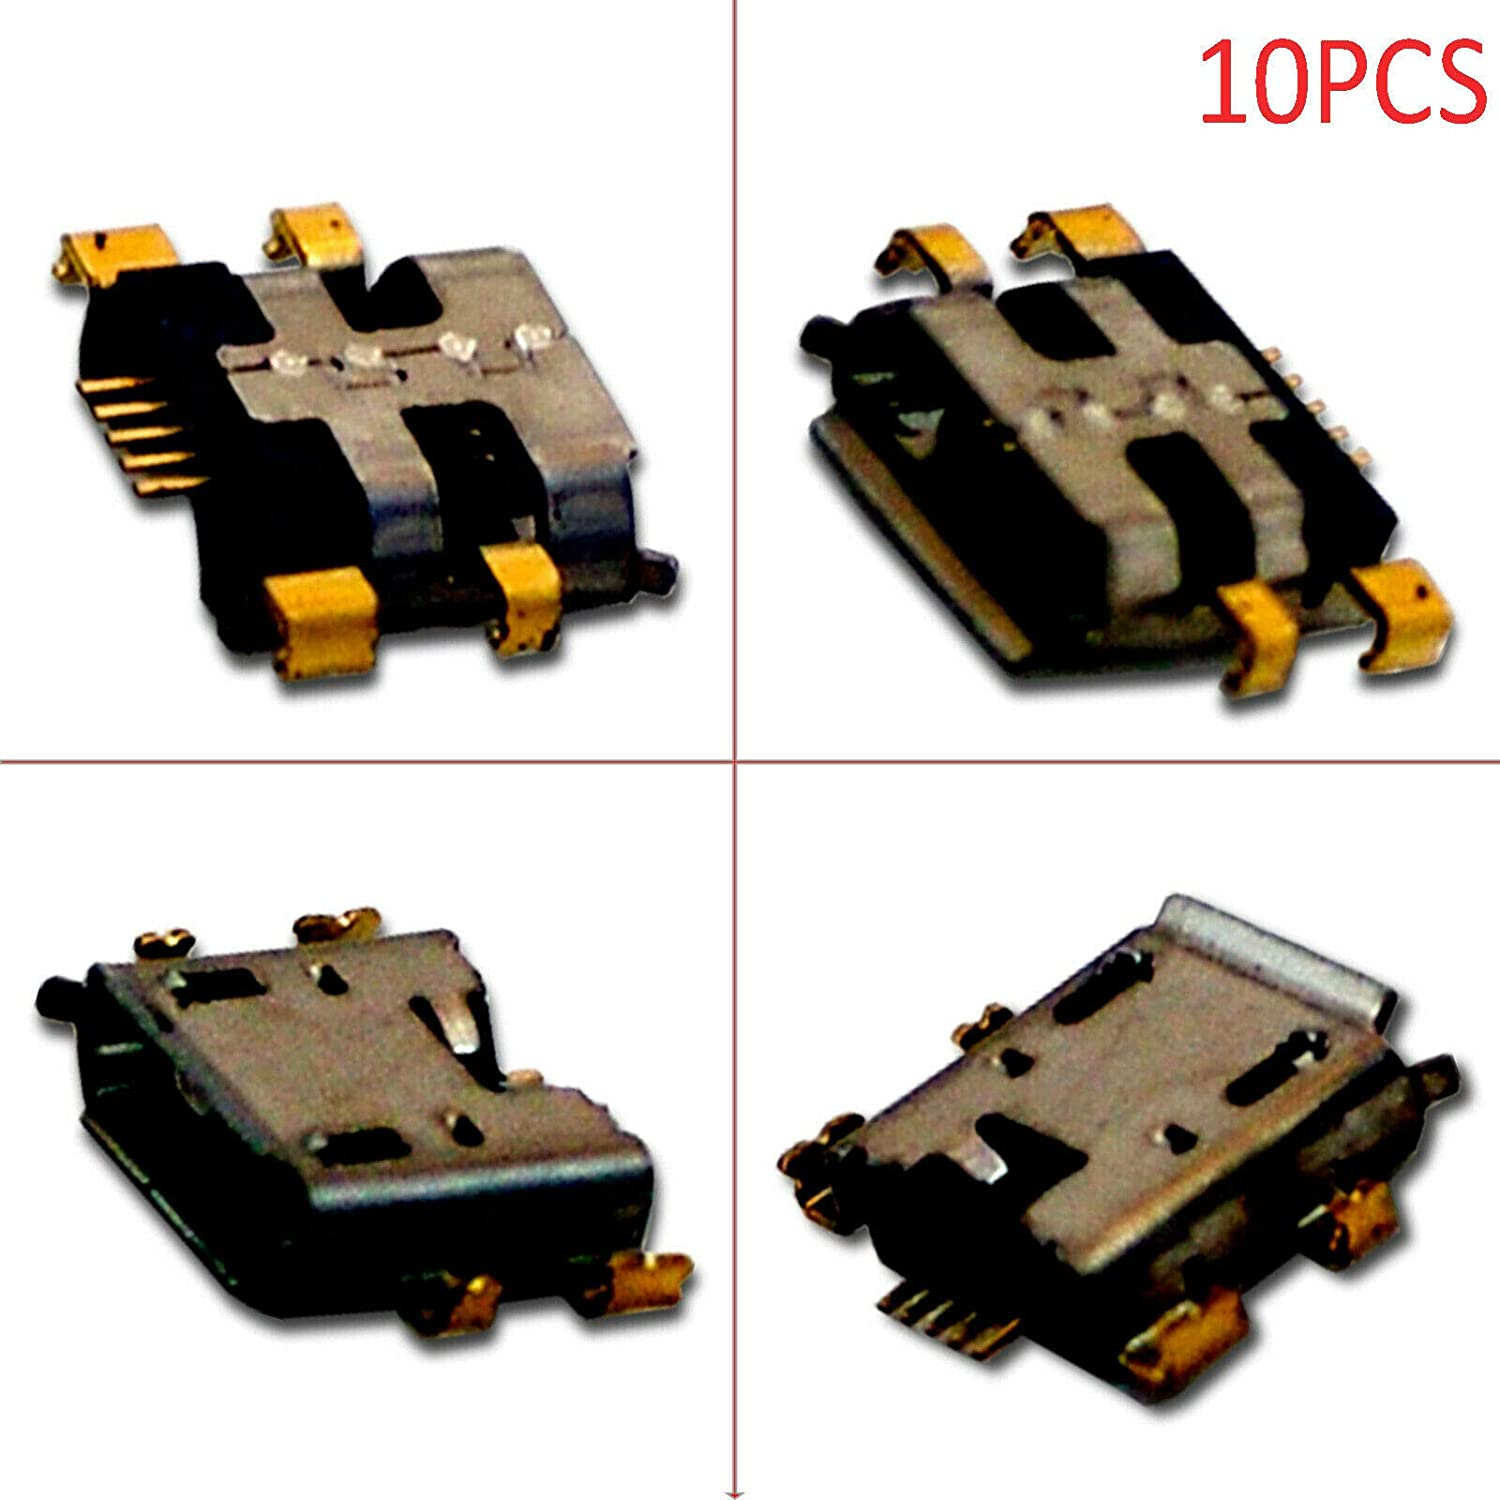 TacPower HQMelectronicsparts Supplies for 10x Micro USB Charging Port for Asus Google Nexus 7 FHD 2nd Gen 2013 ME571K K008